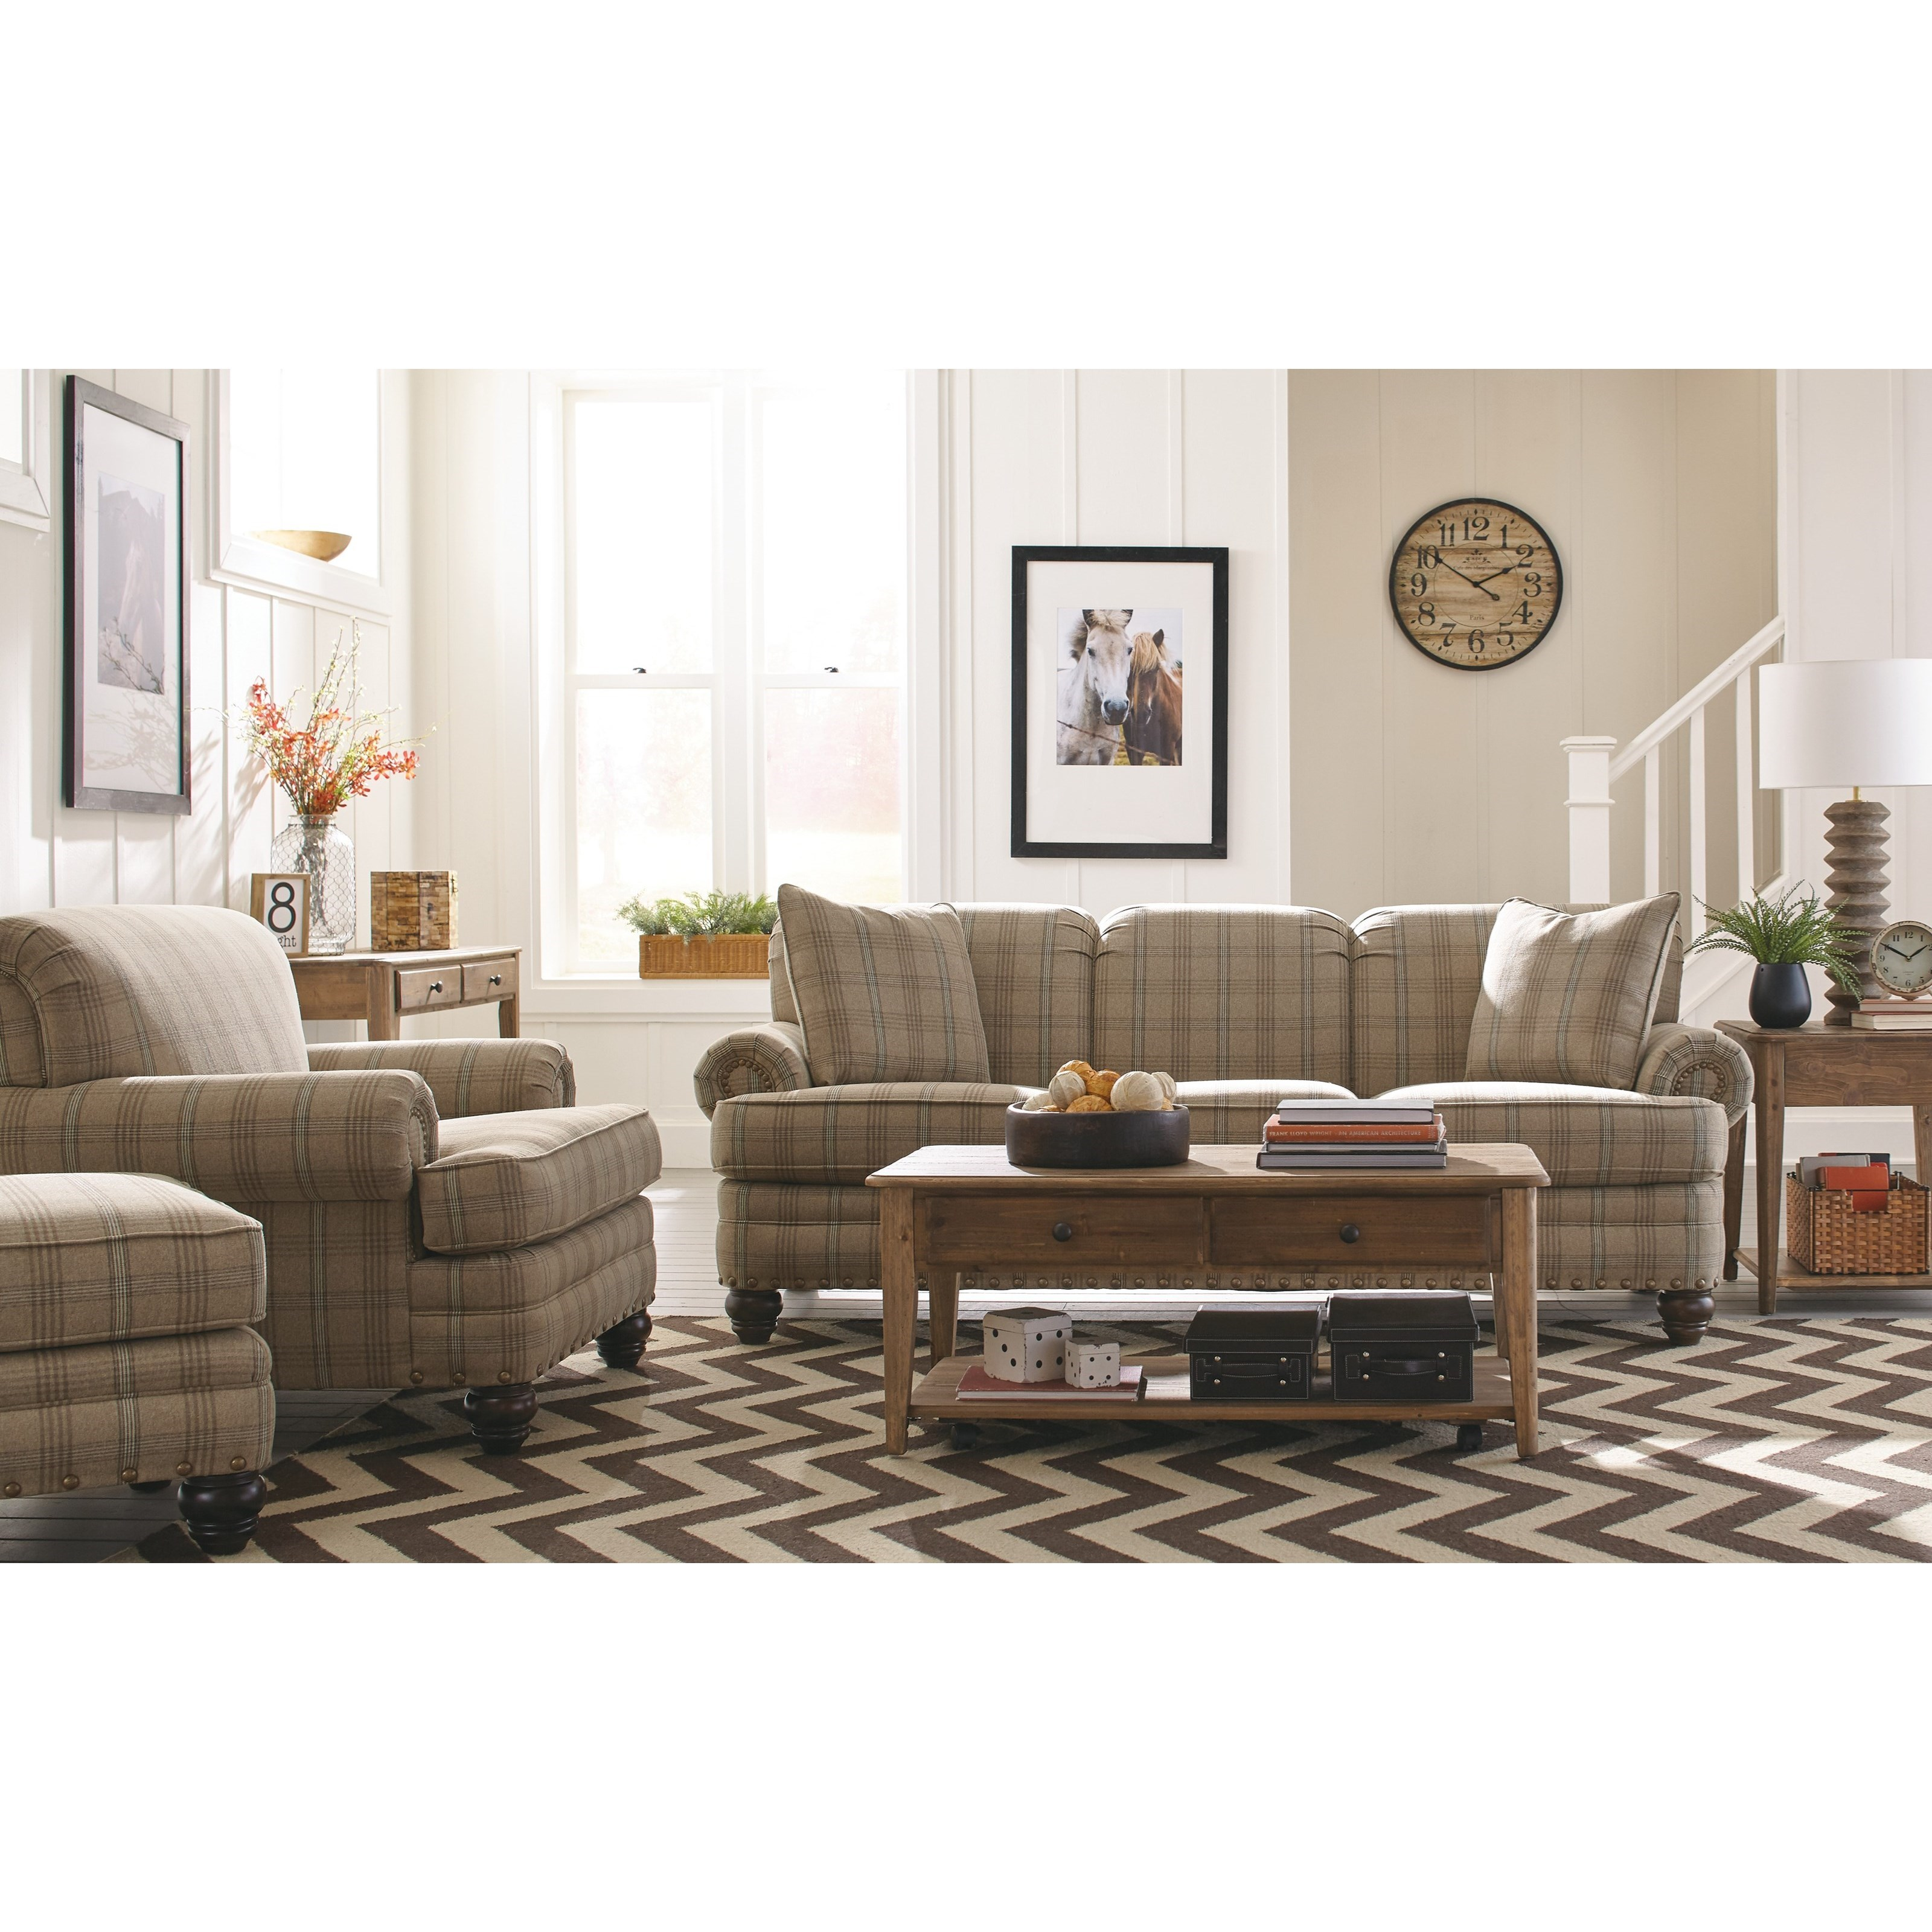 Hickorycraft 7281 Traditional Loveseat With Rolled Arms